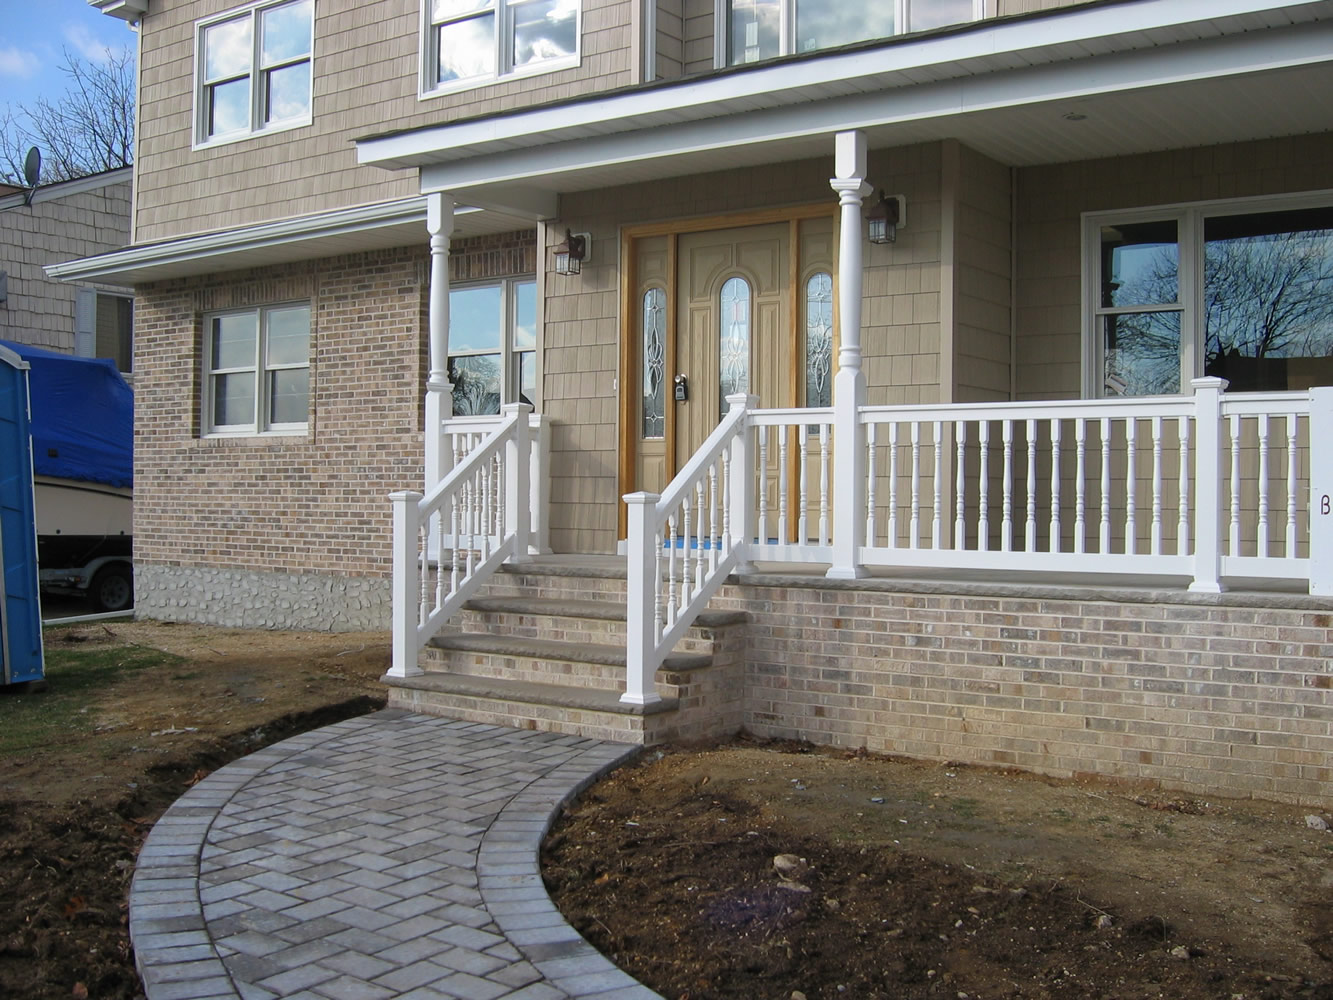 Reno Style PVC Railing with T-rail Tops and Heritage Porch Posts